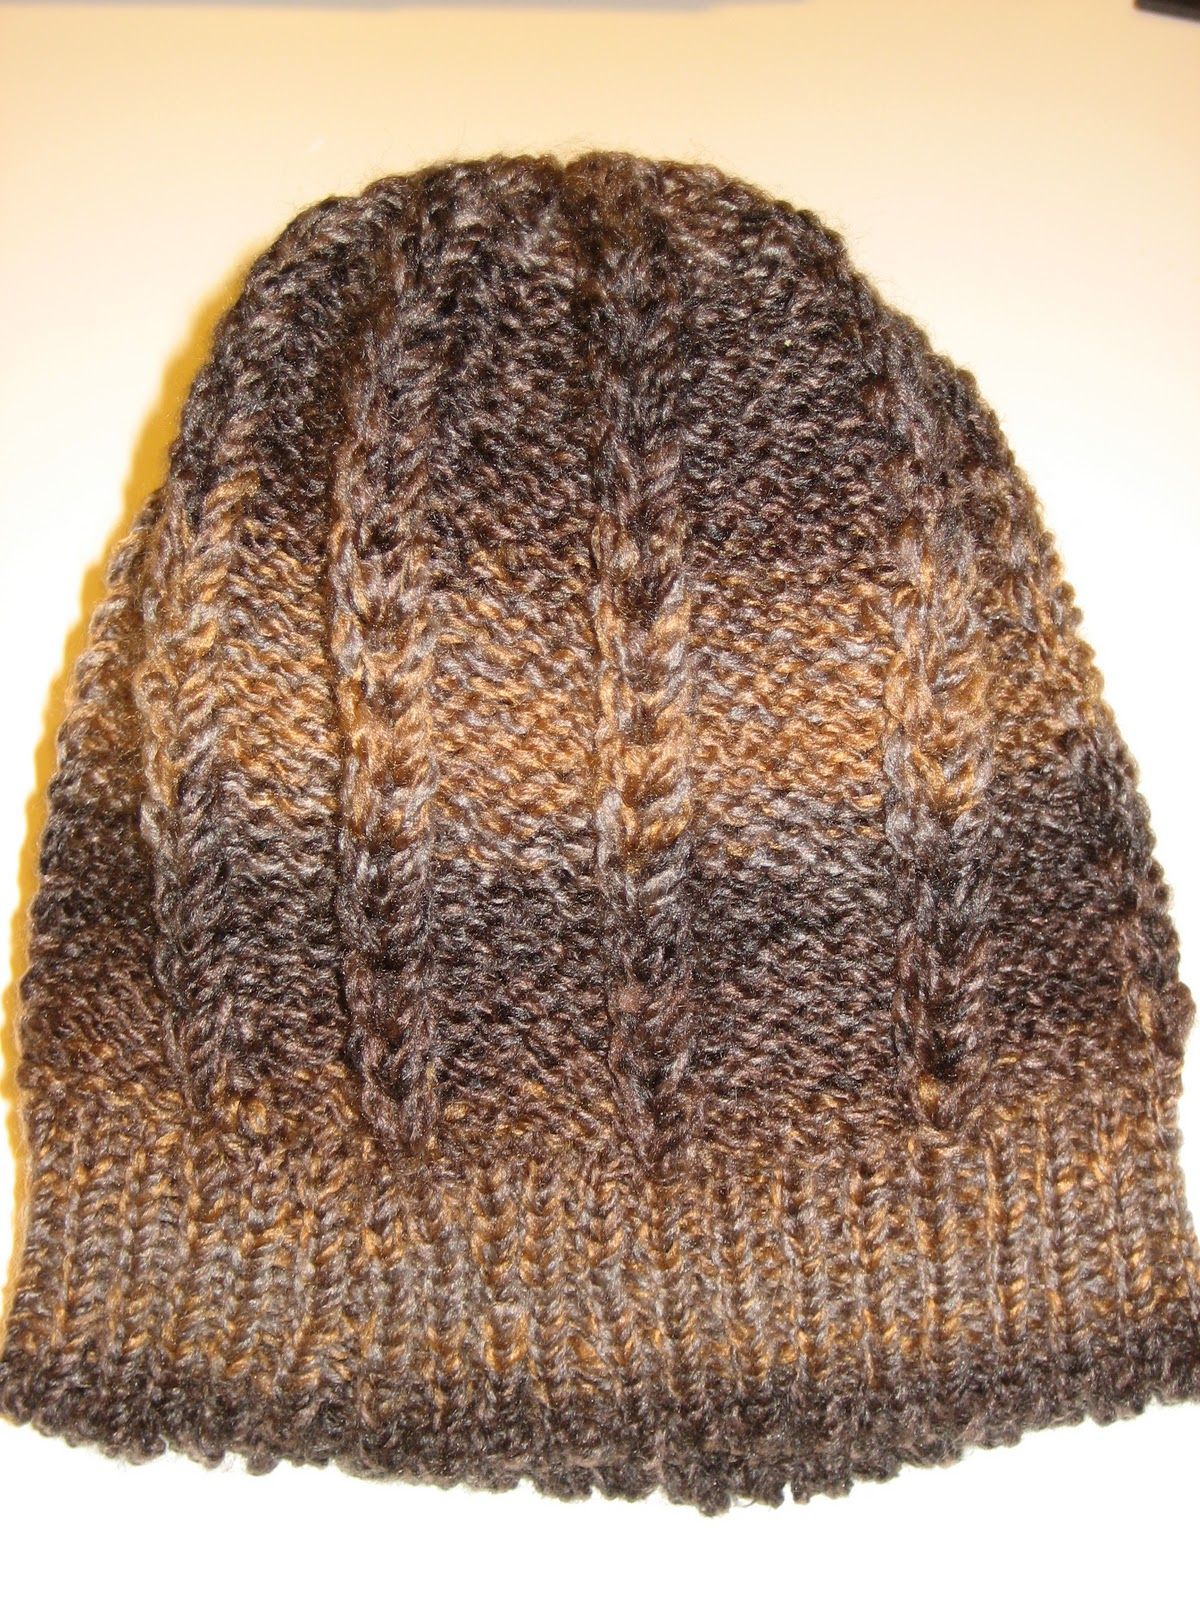 Diana natters on about machine knitting november 2010 next usm item hat to match scarf bankloansurffo Image collections